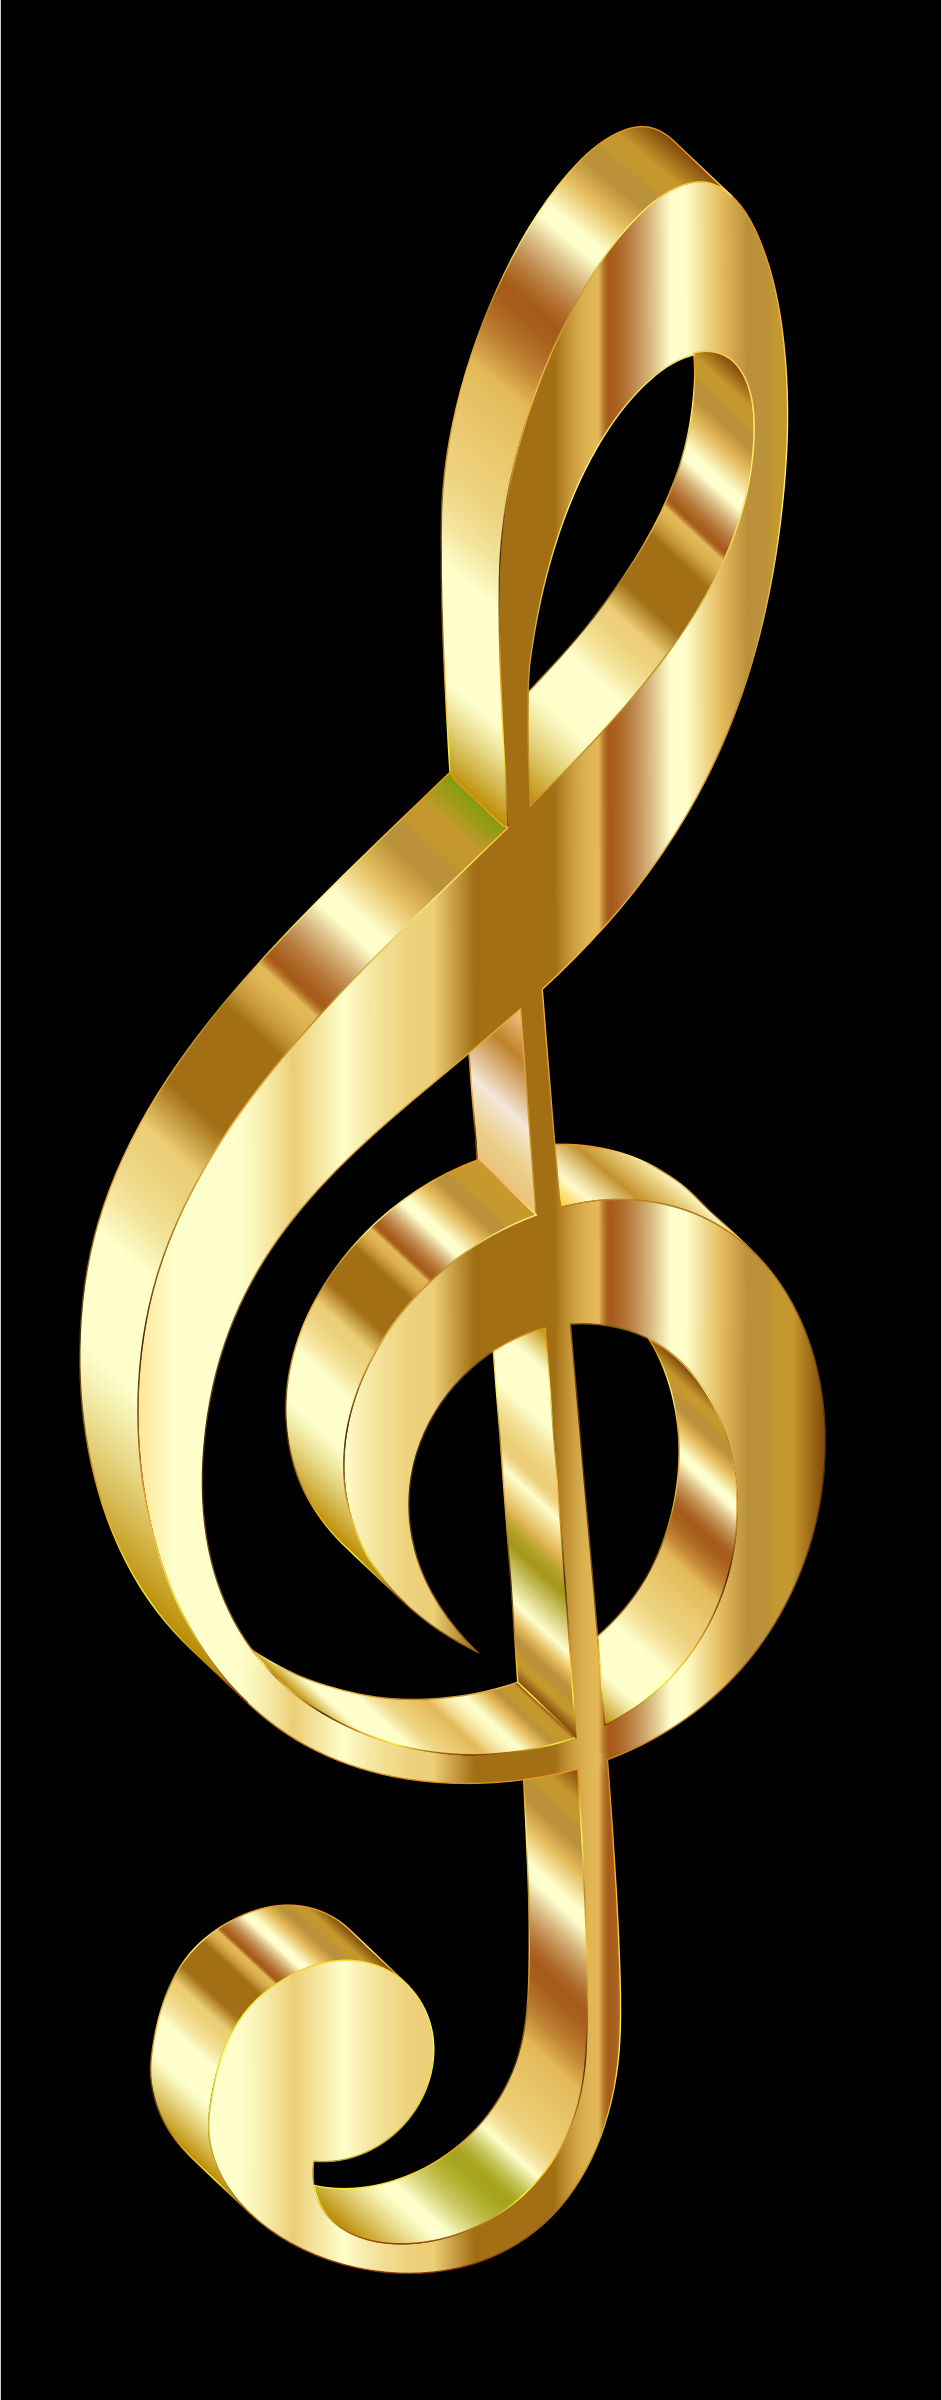 Gold 3D Clef 2 by GDJ